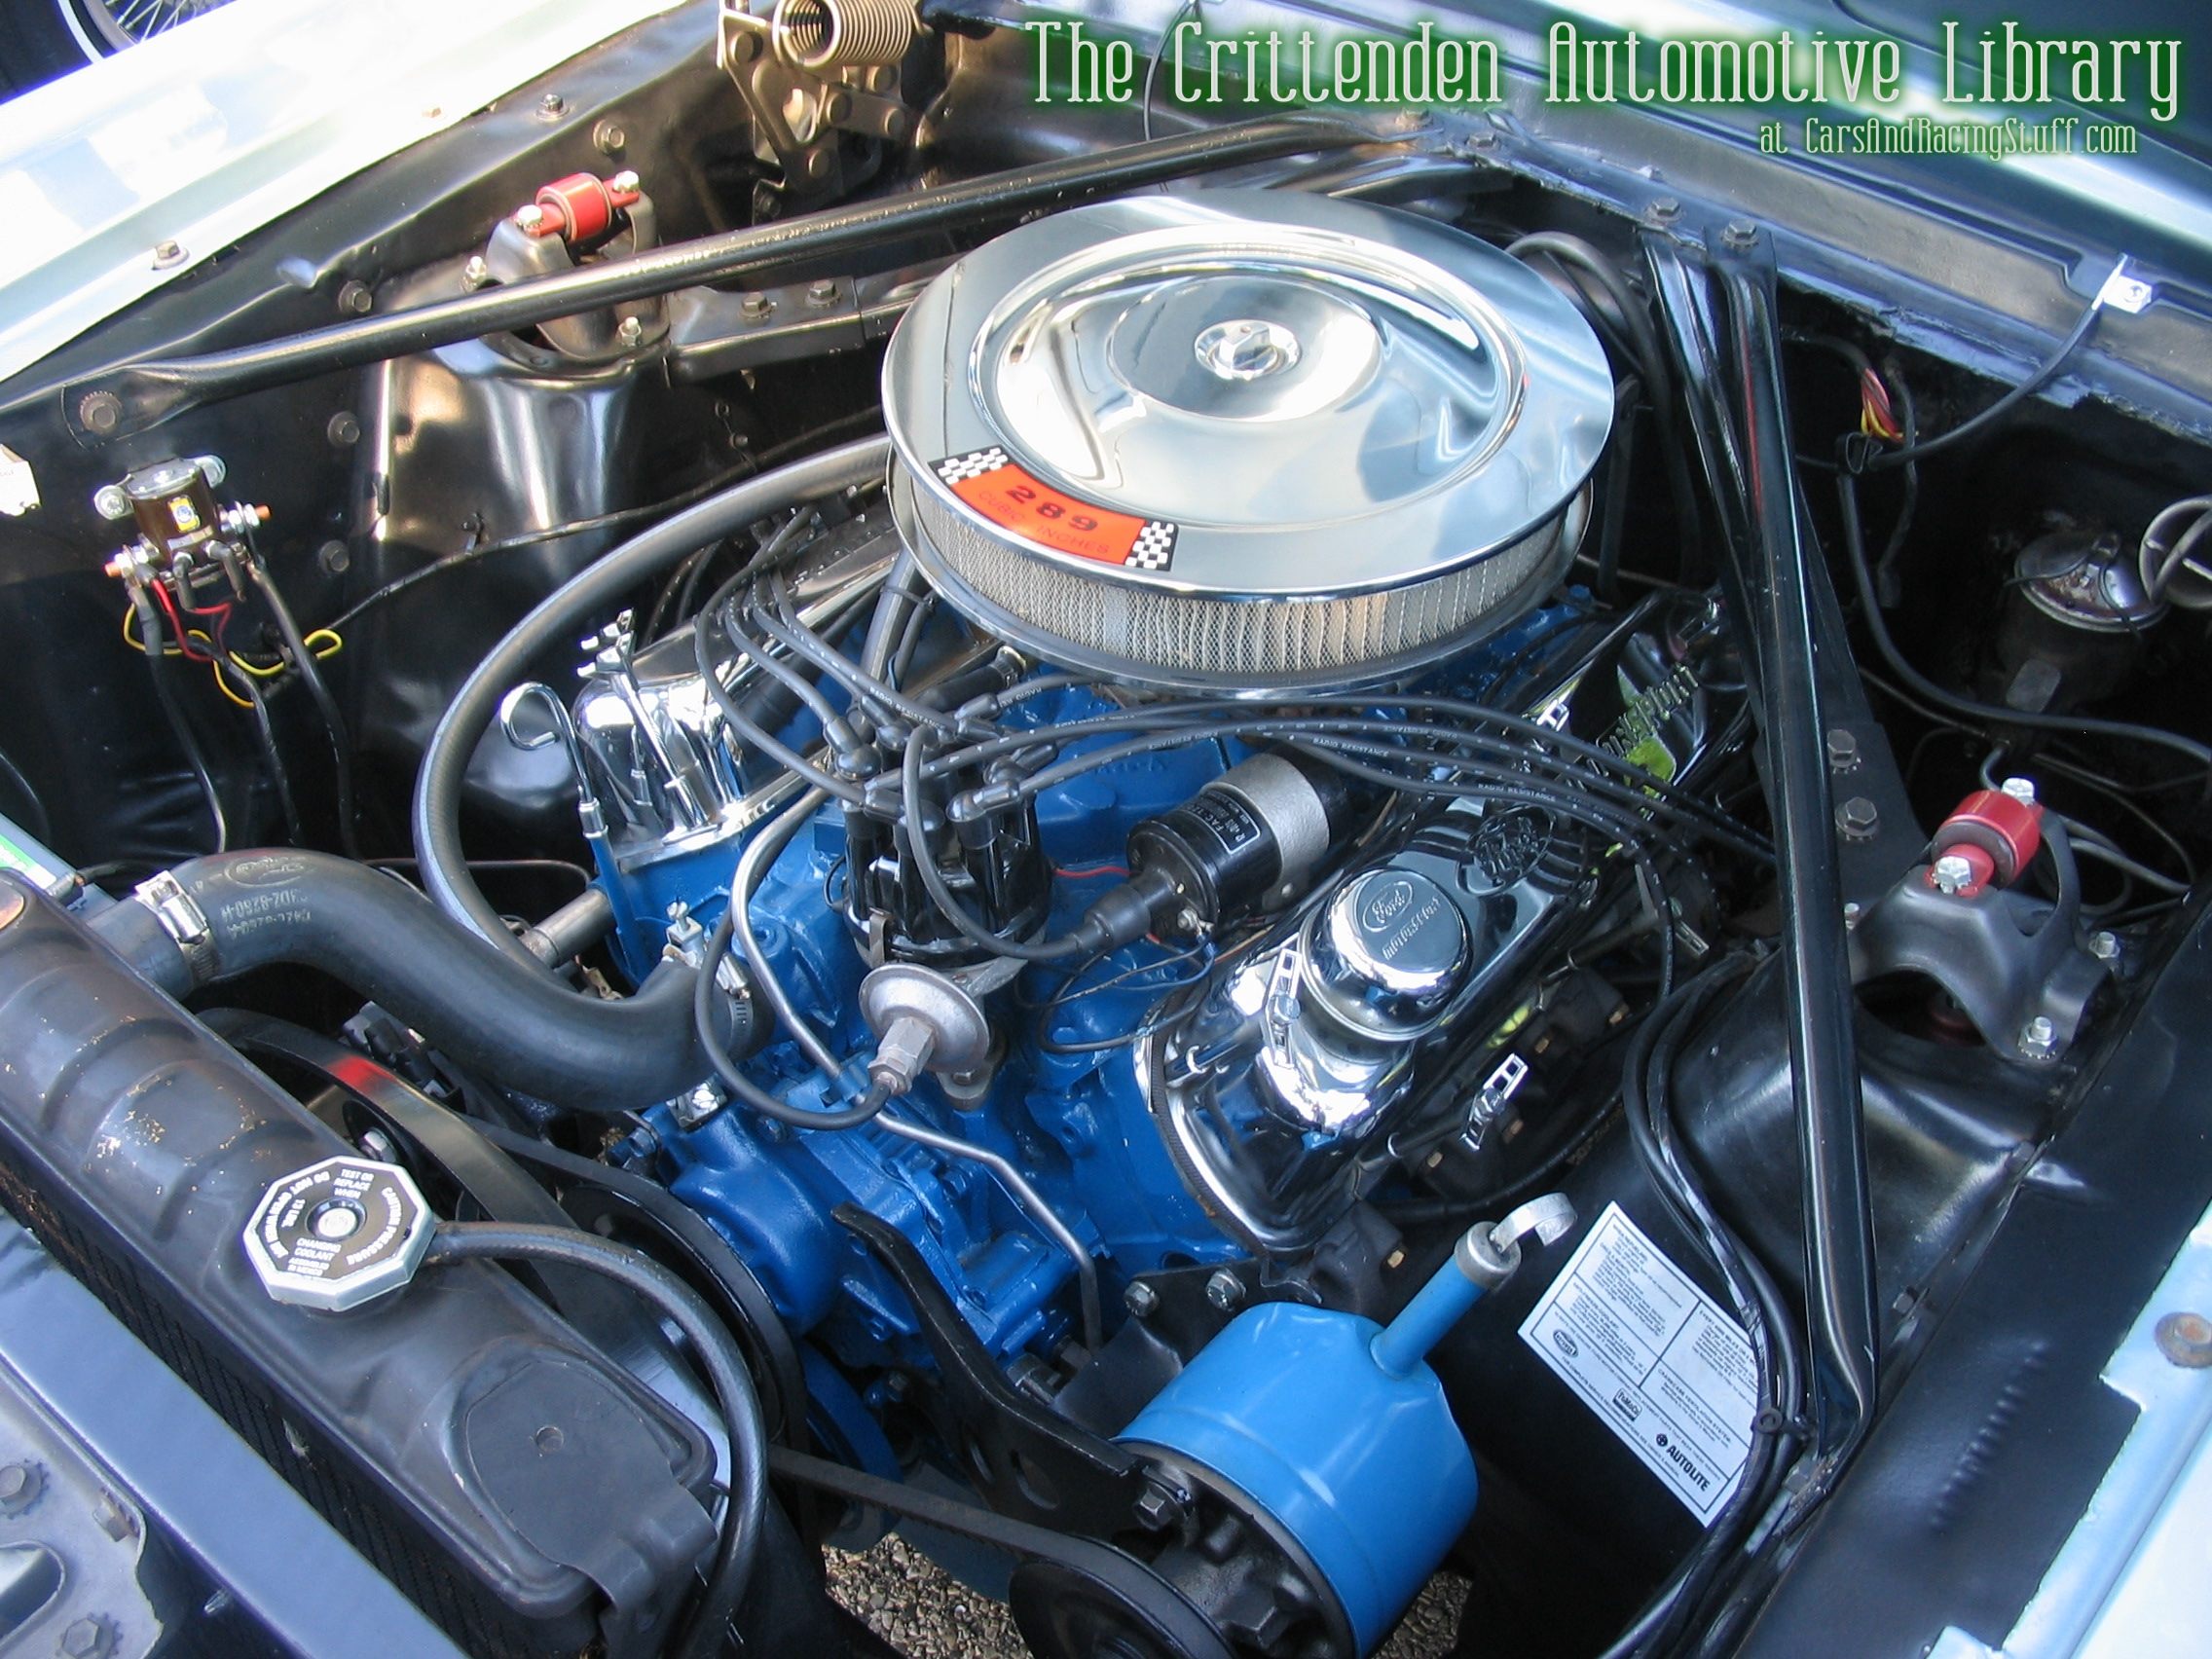 1966 mustang 289 engine dodge stratus wiring diagram ford the crittenden automotive library